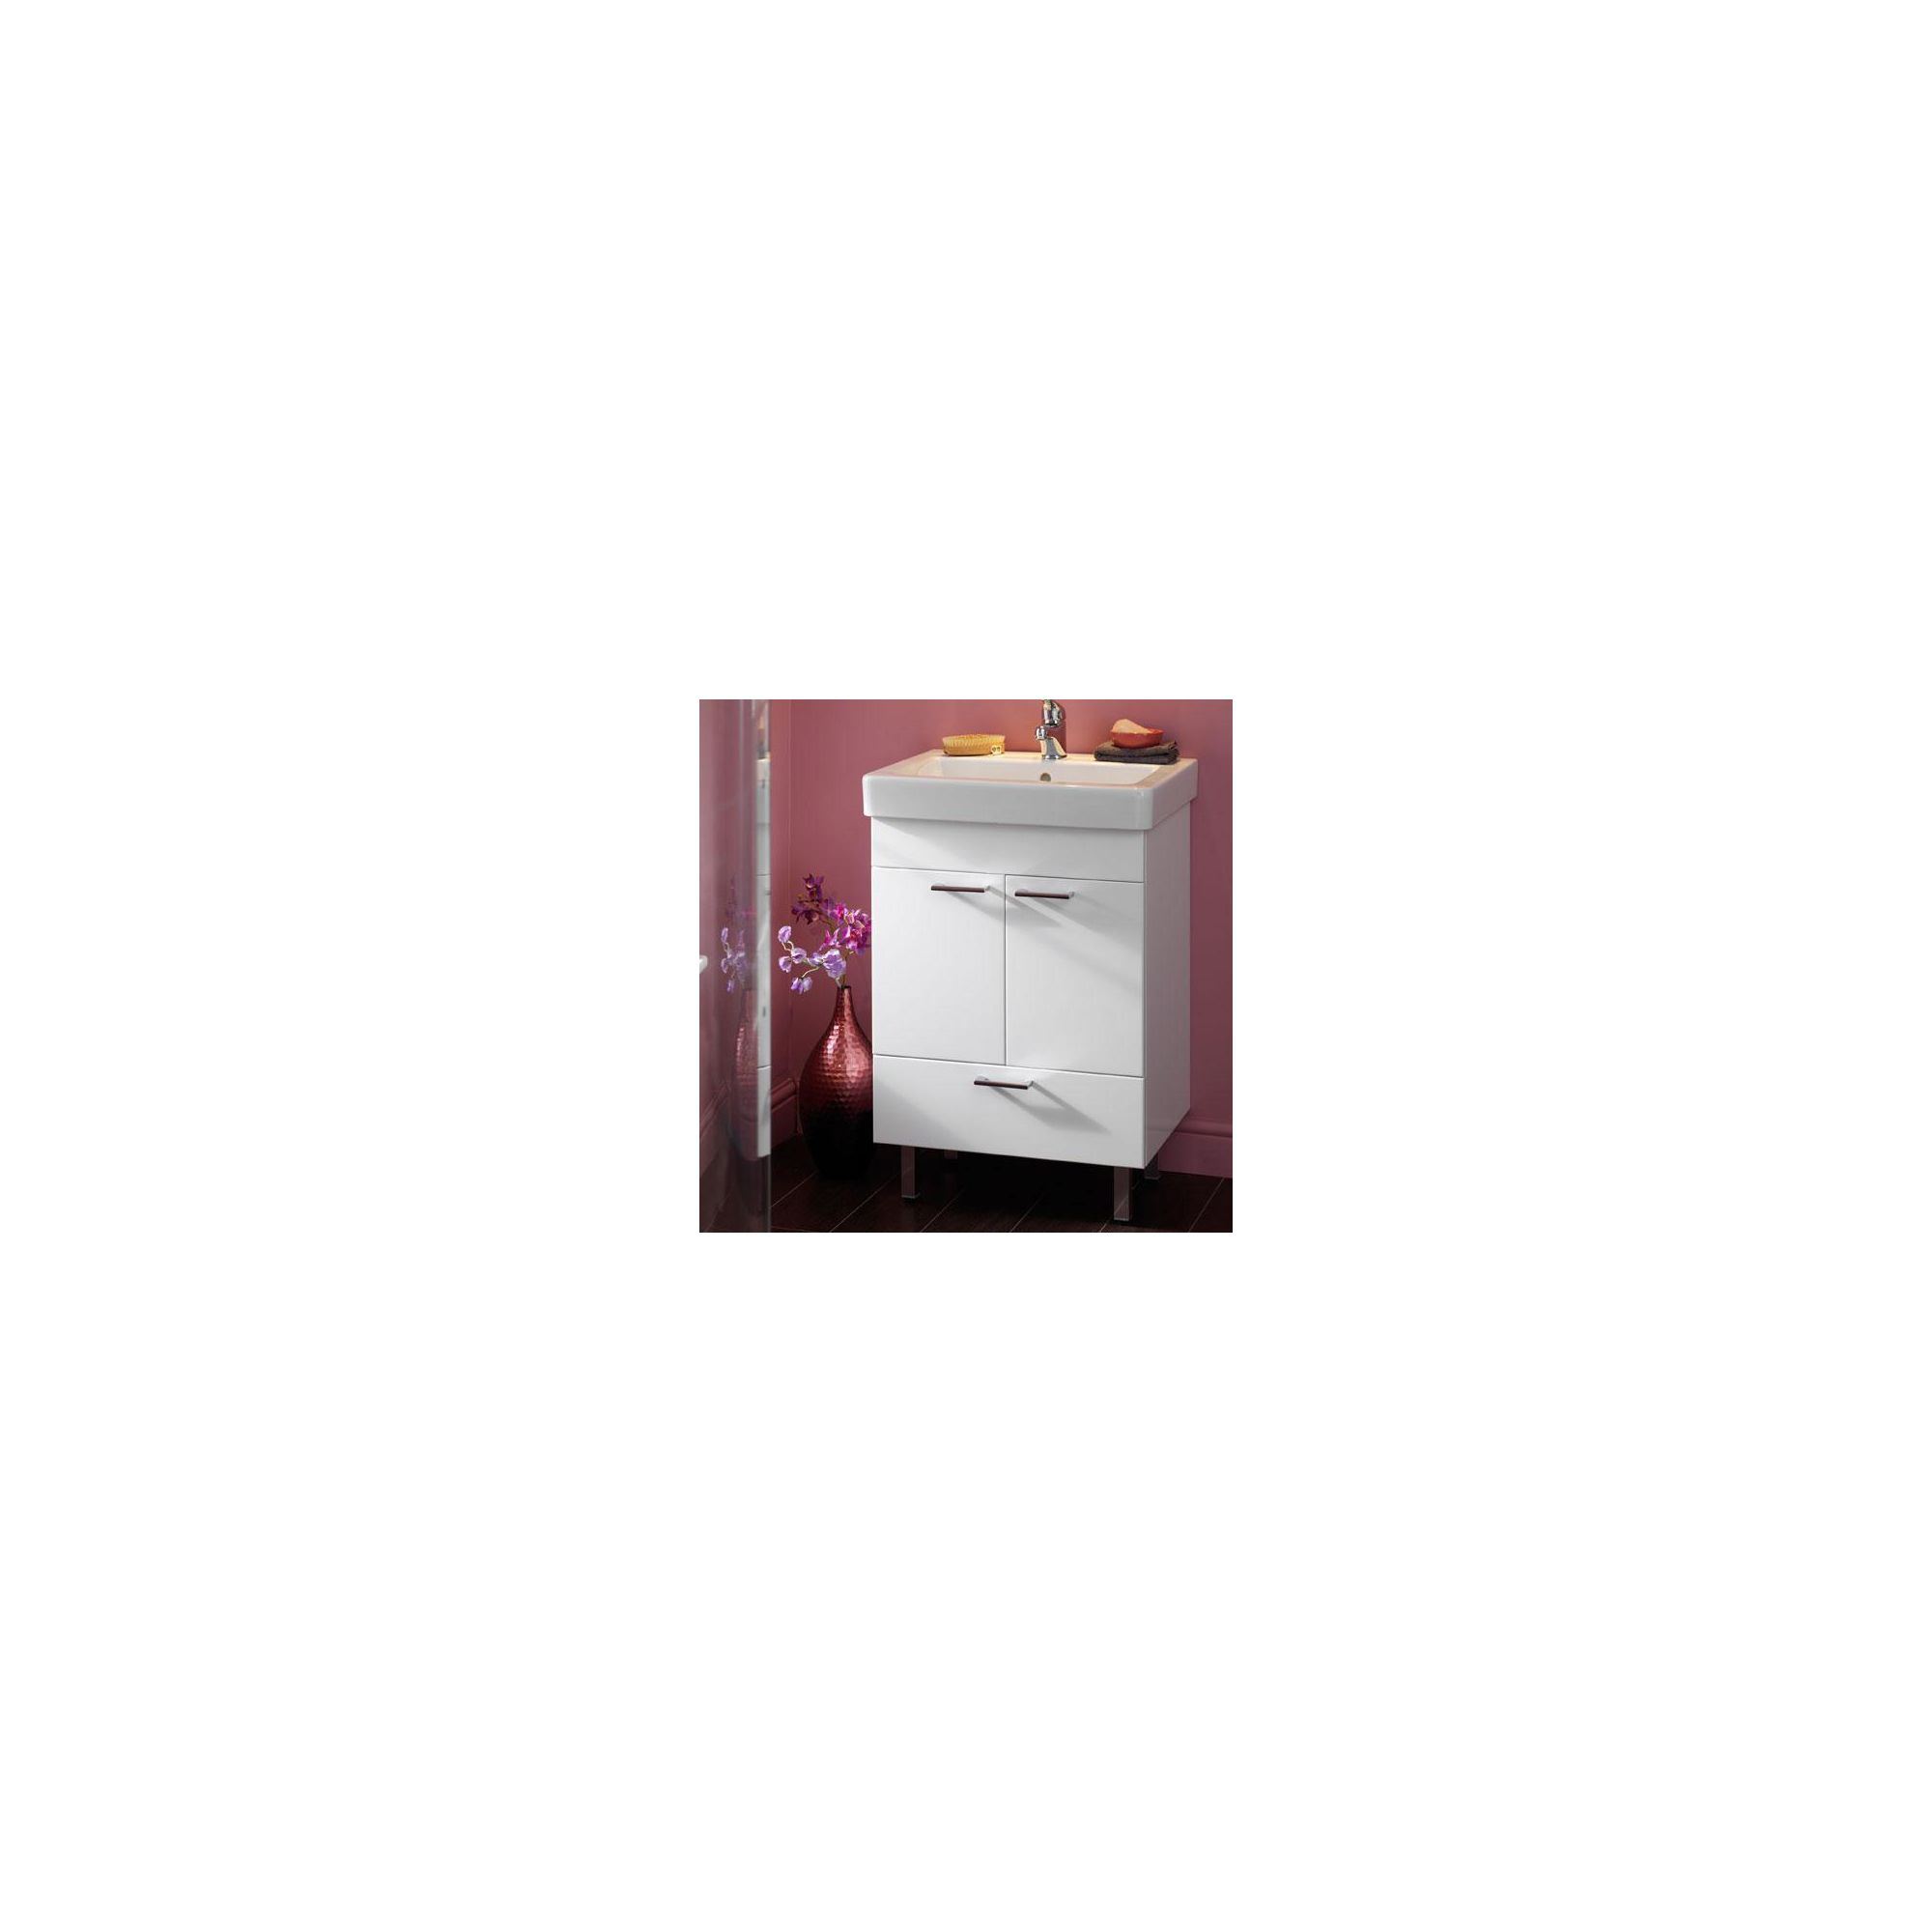 Duchy Trerise White Floor Standing 2 Door 1 Drawer Vanity Unit and Basin - 600mm Wide x 445mm Deep